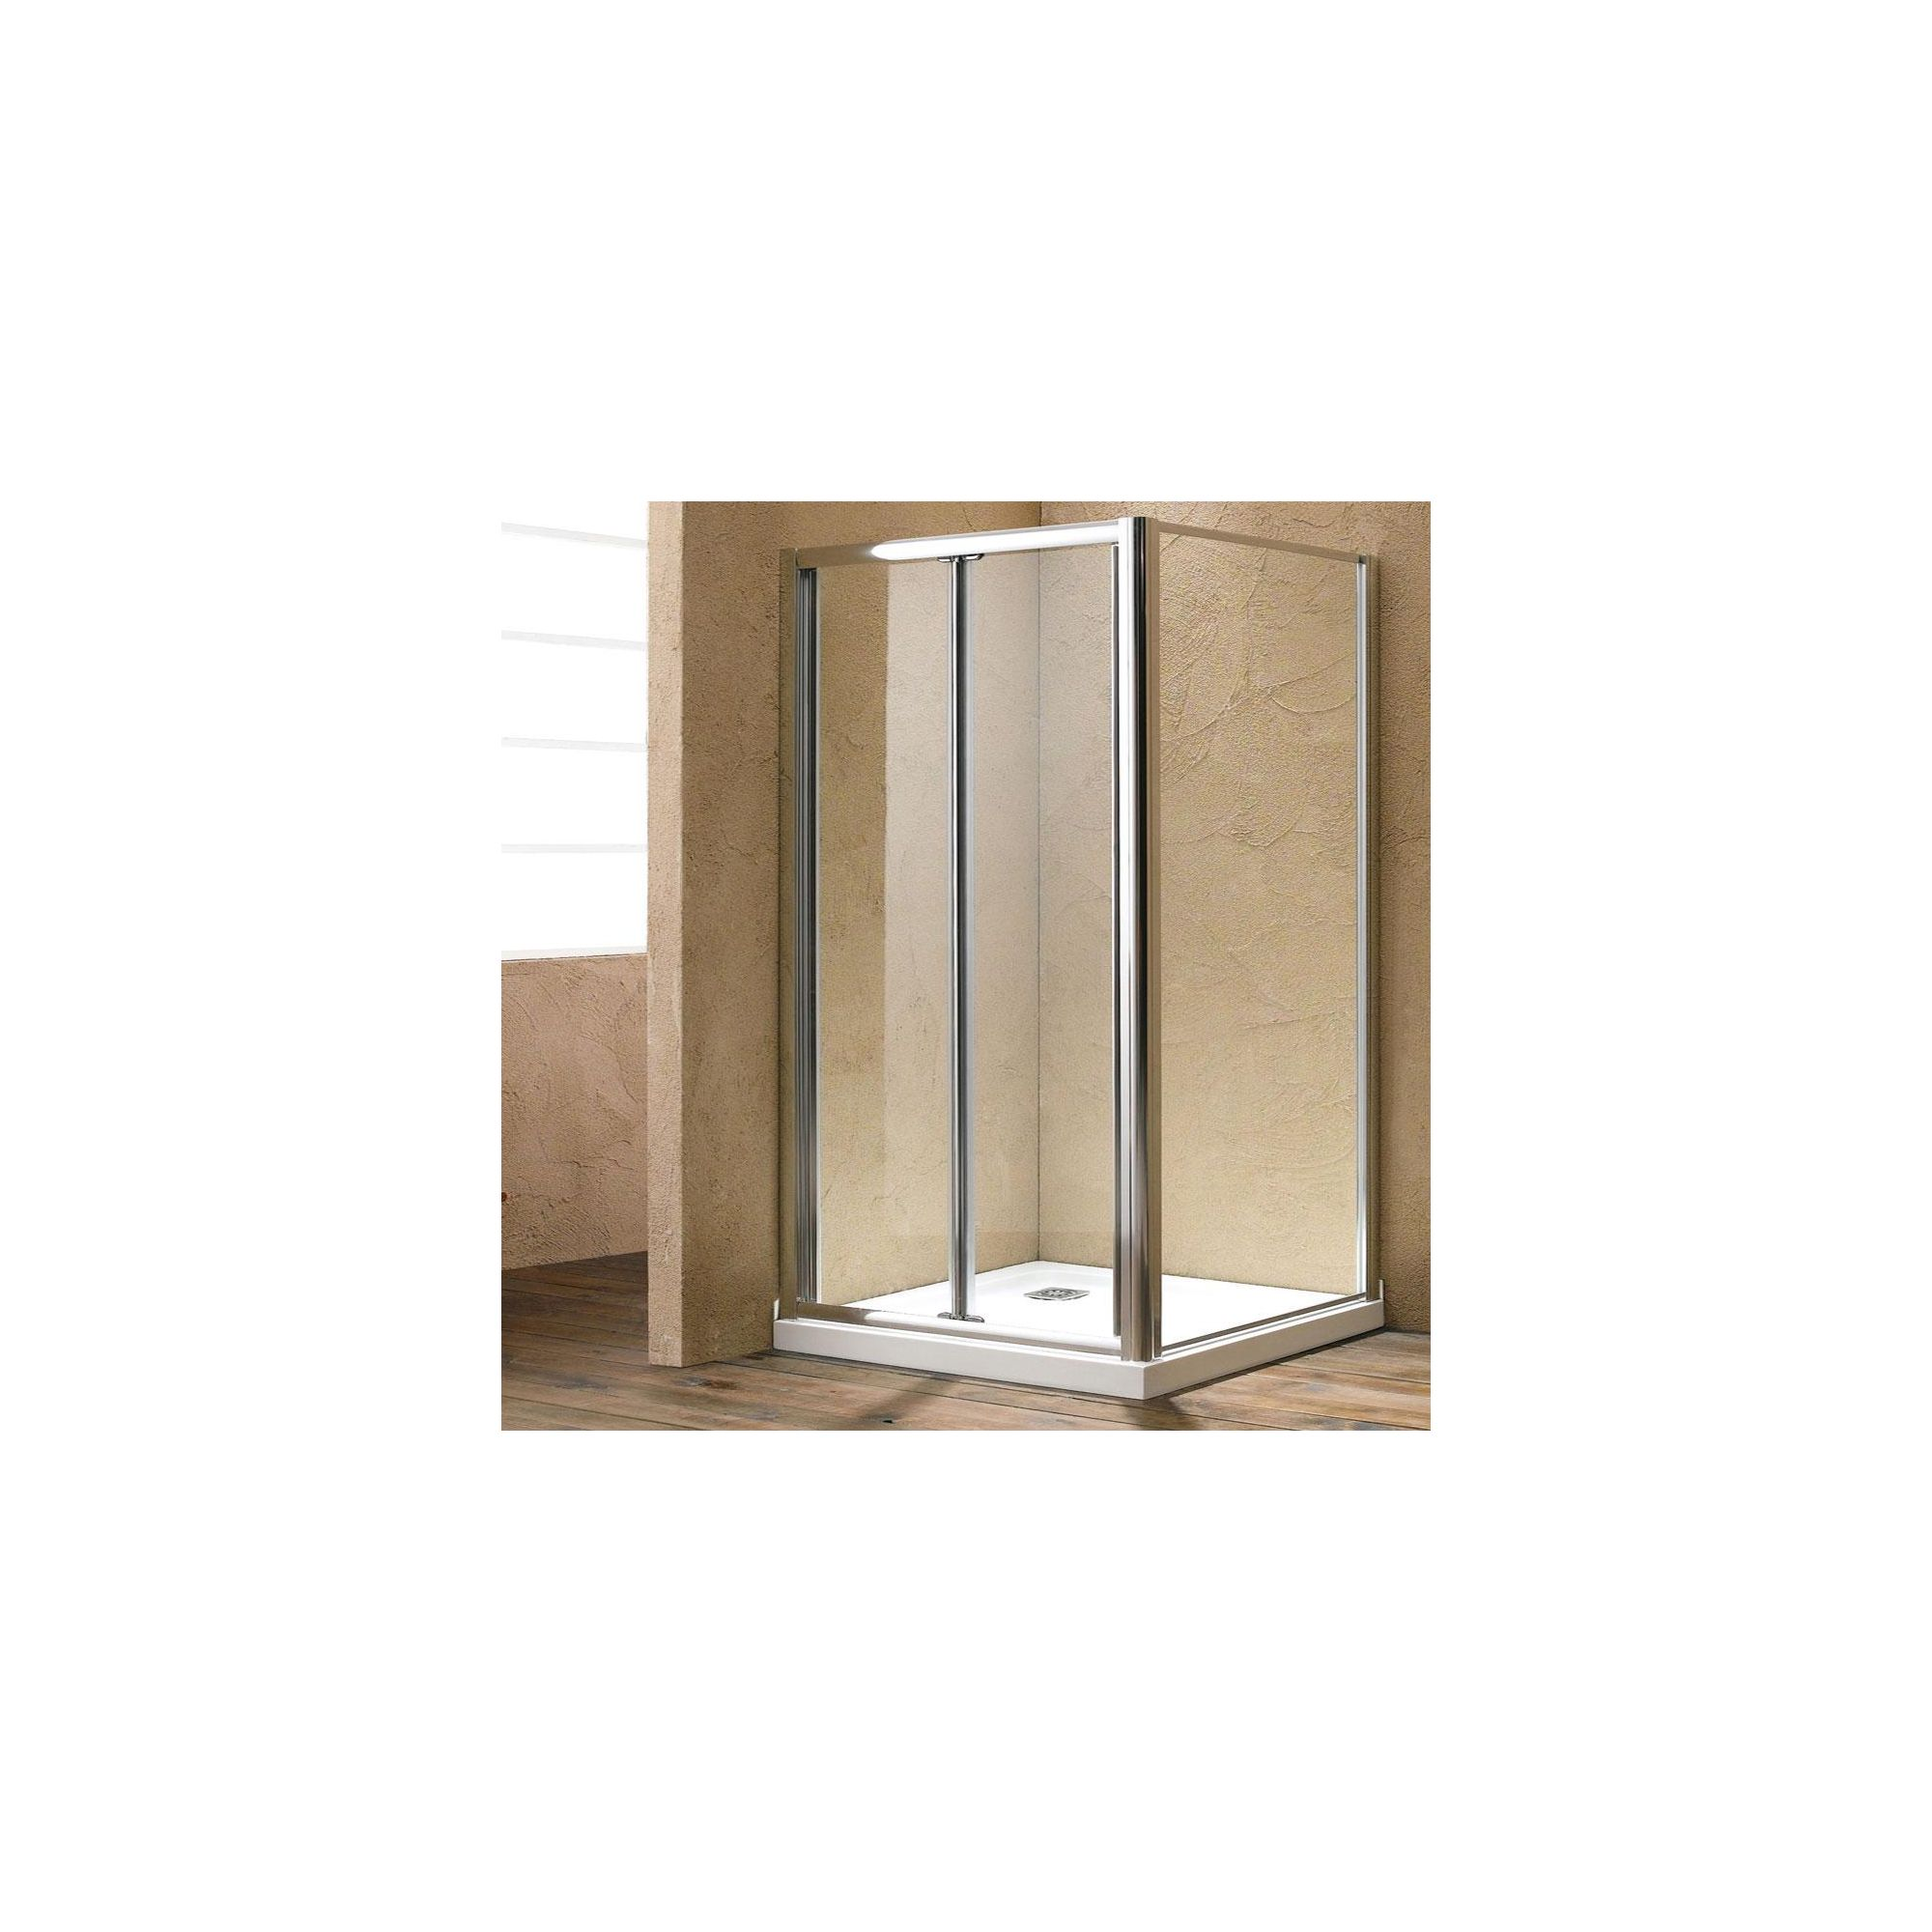 Duchy Style Single Bi-Fold Door Shower Enclosure, 700mm x 700mm, 6mm Glass, Low Profile Tray at Tesco Direct